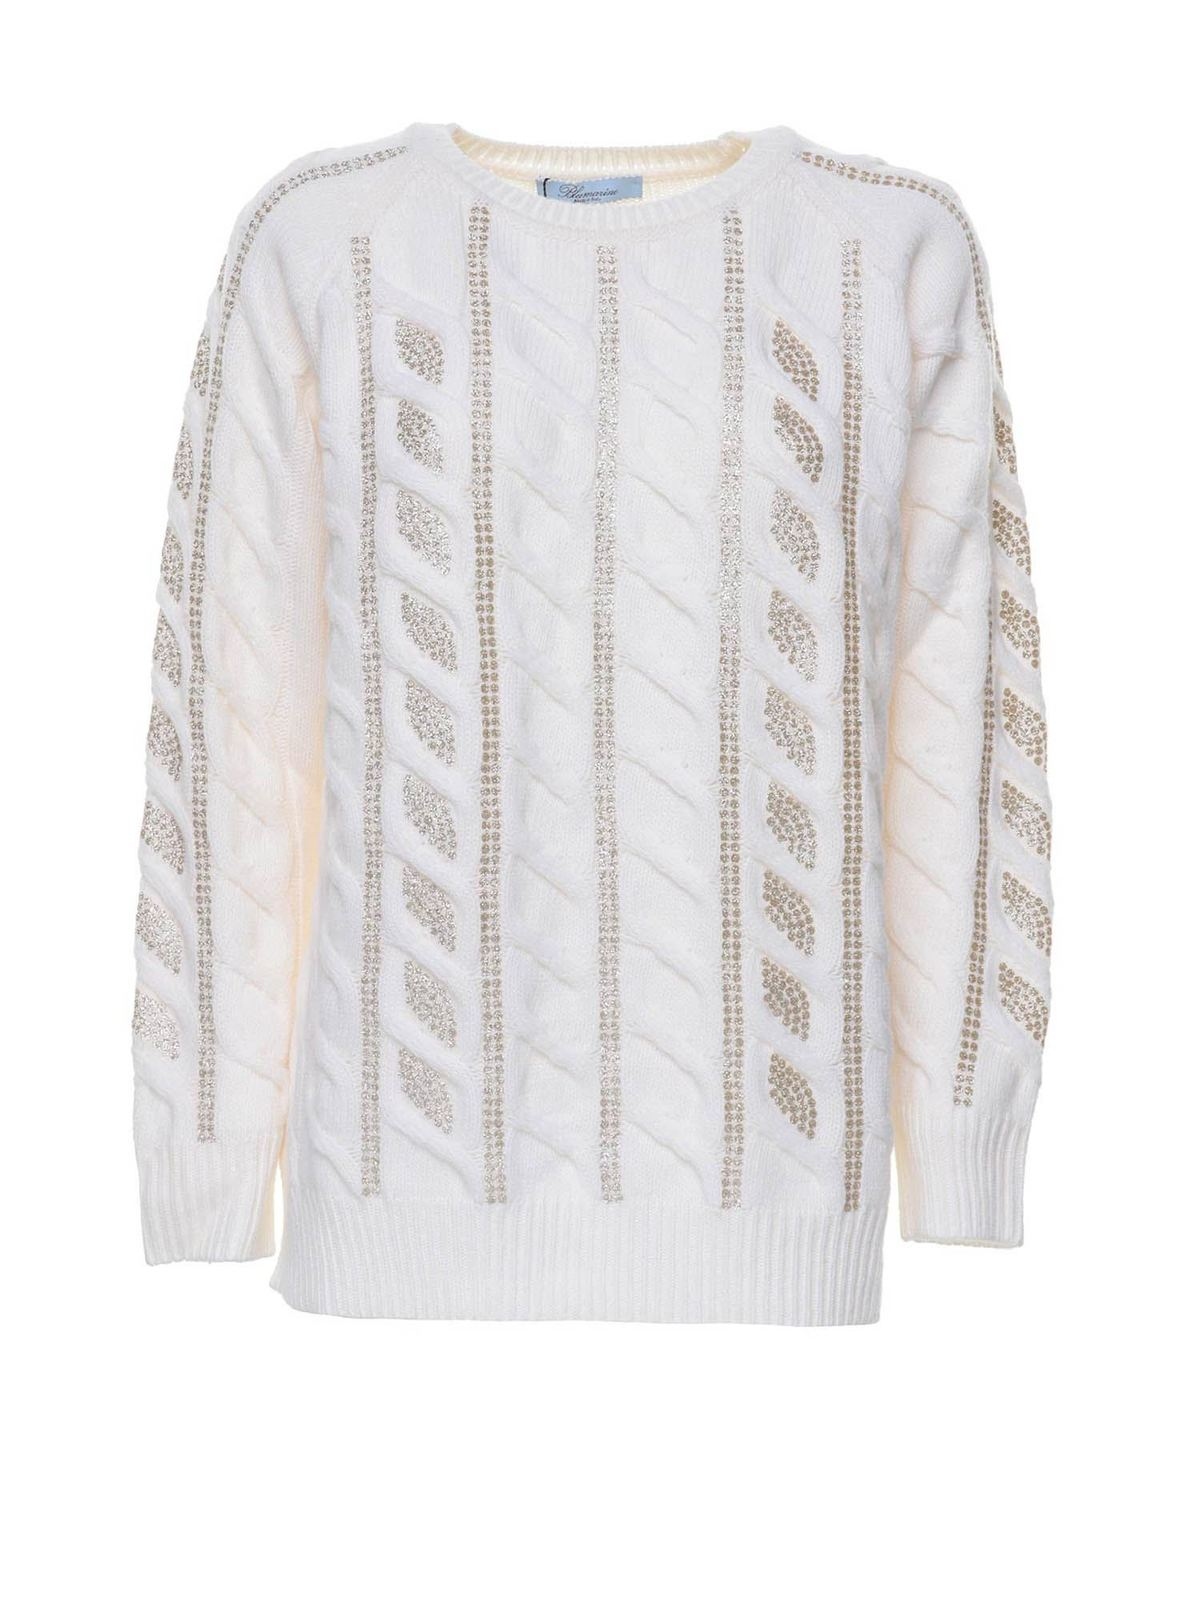 Blumarine LAME DETAILED SWEATER IN WHITE